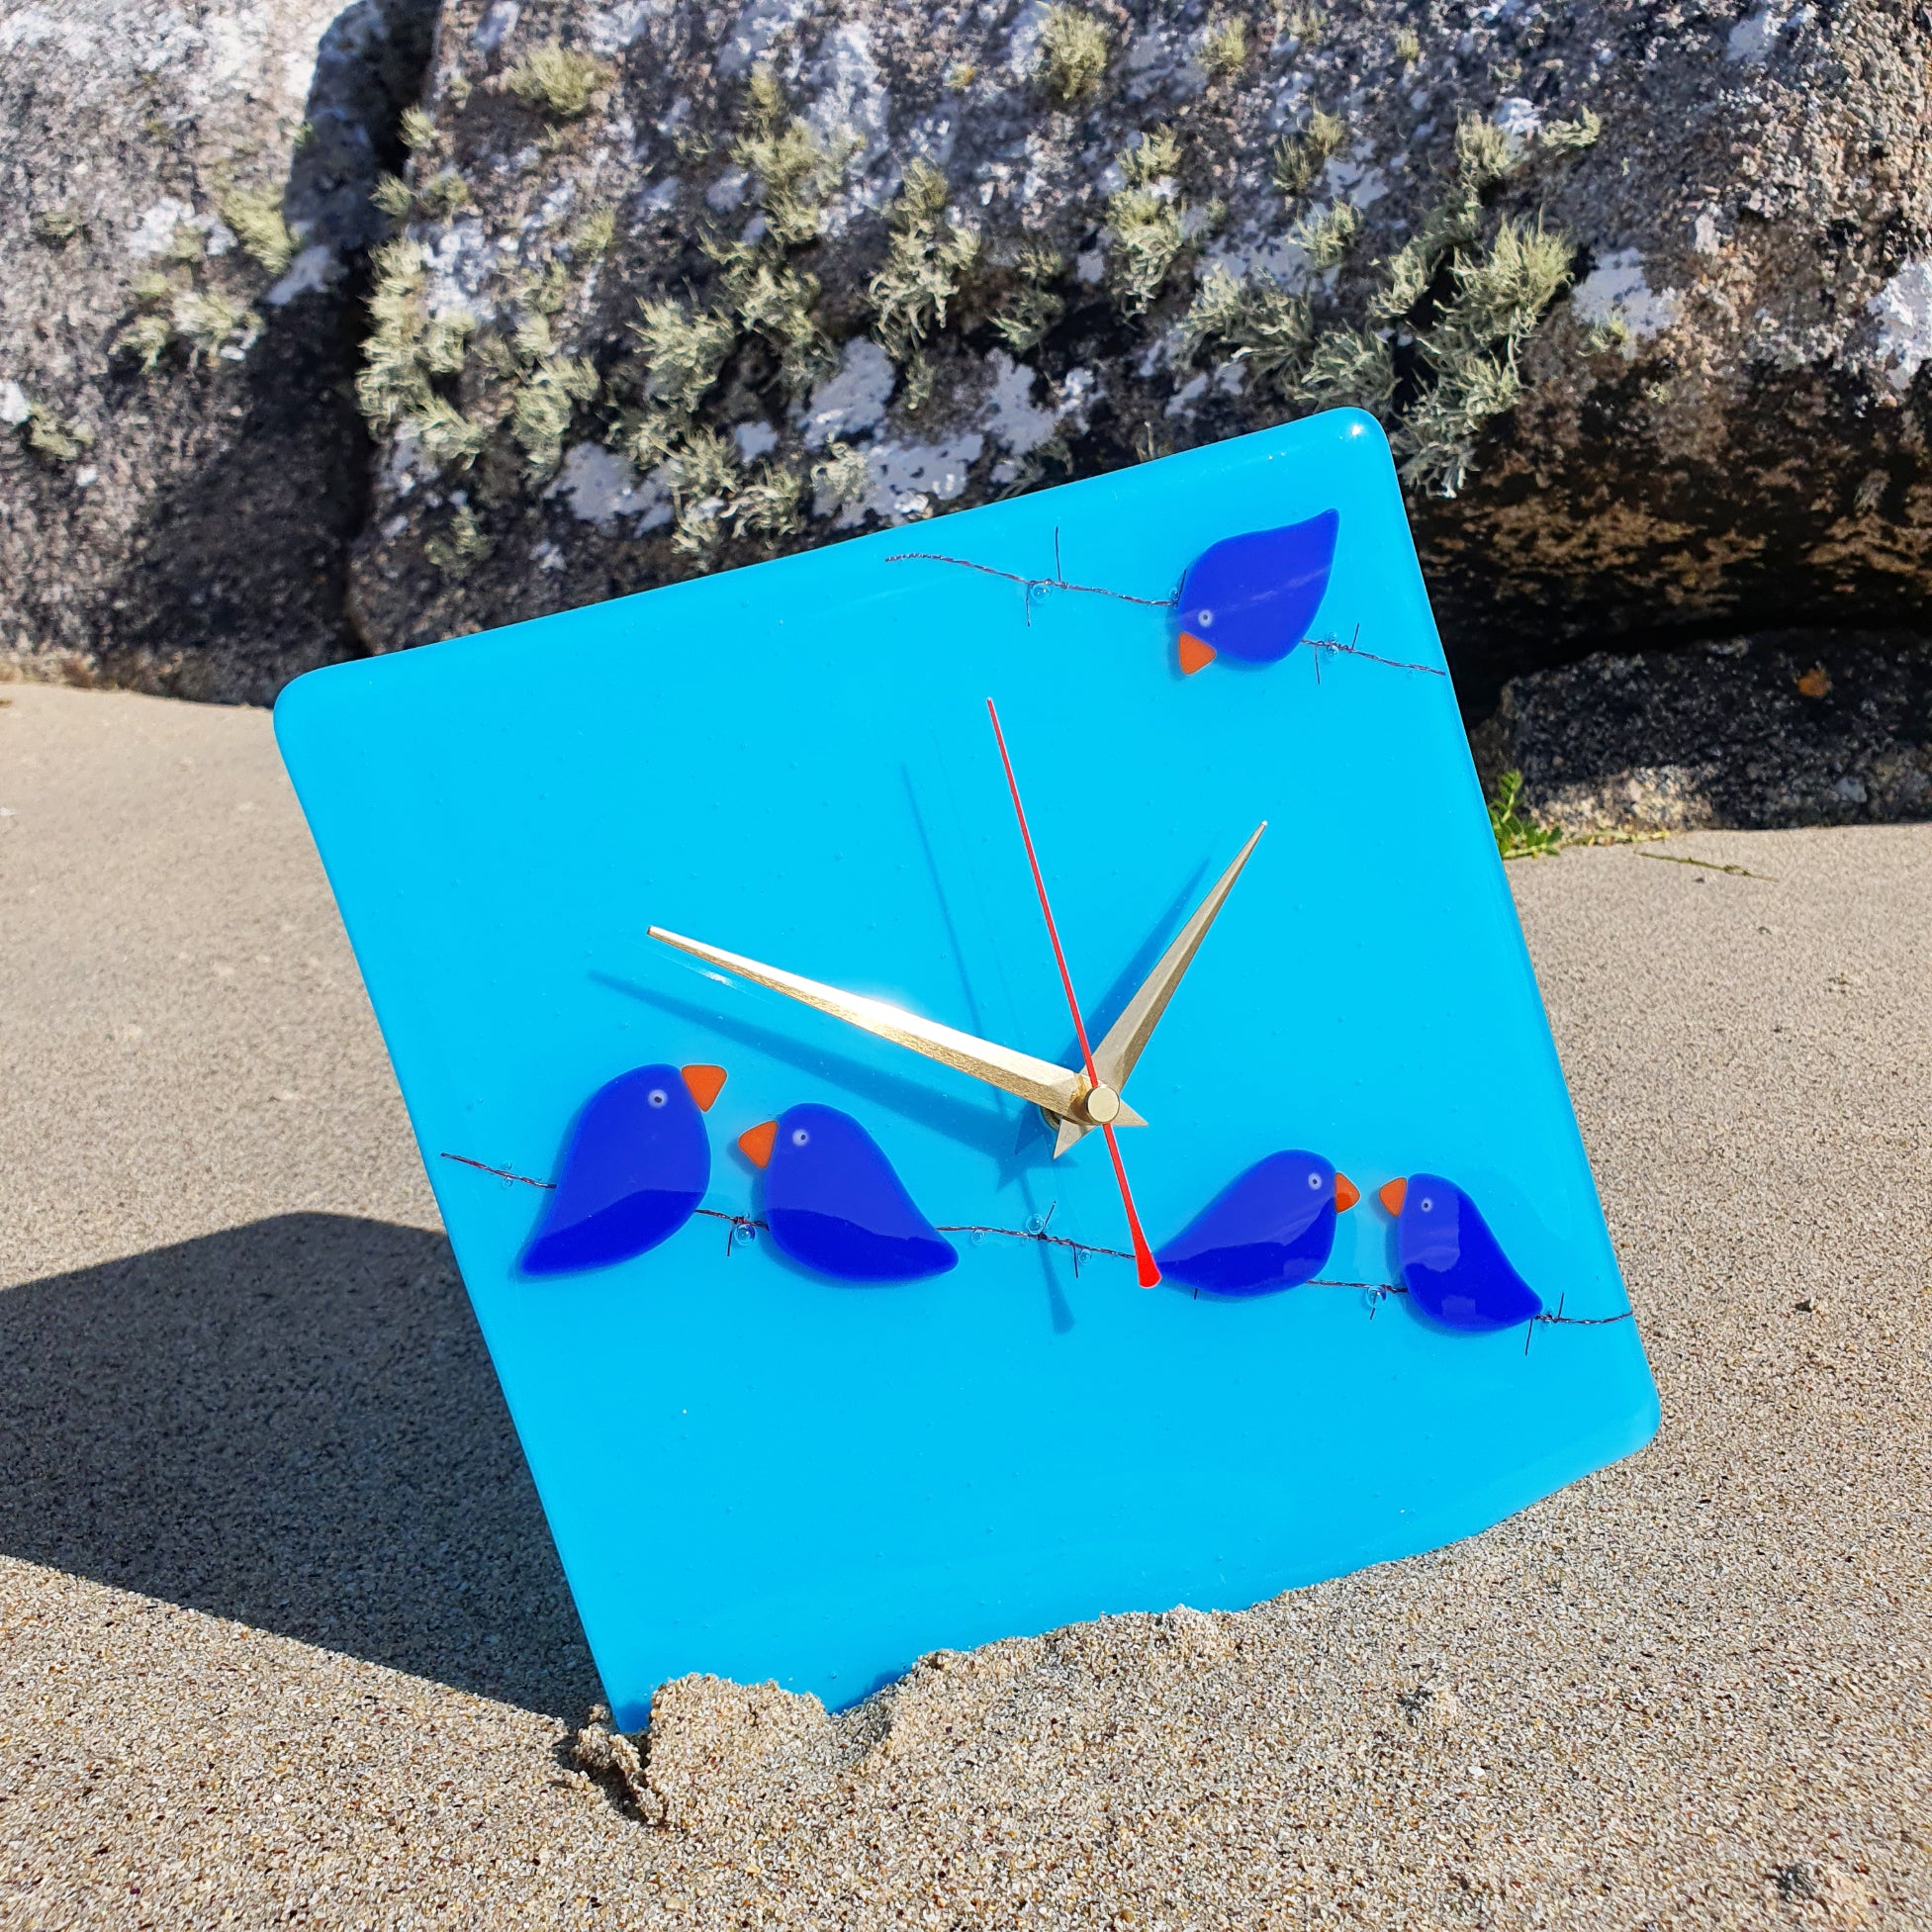 A fused glass clock featuring bright blue birds perched on barbed wire, set on a lighter blue background